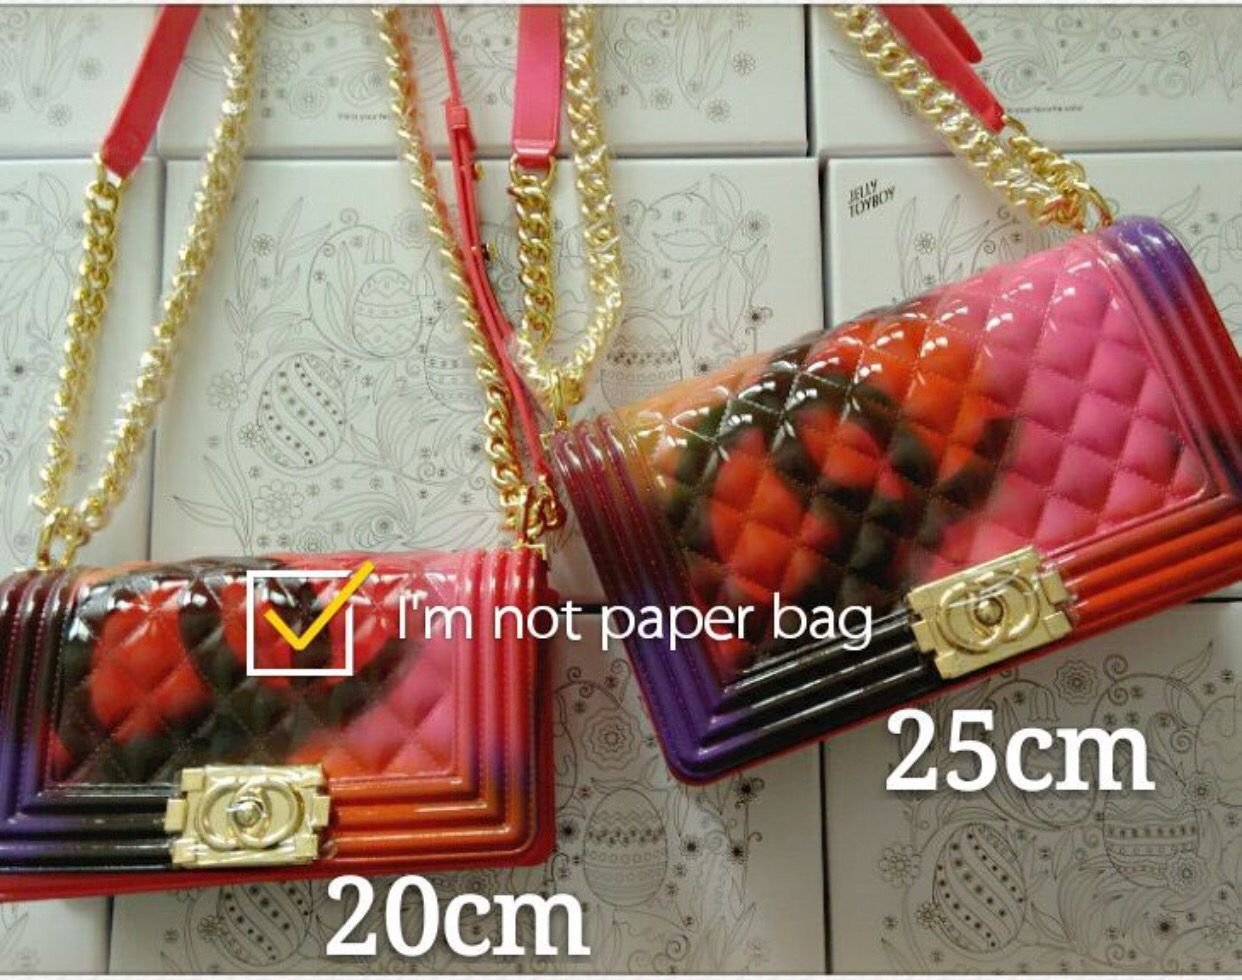 70299cce7765 Jelly toyboy limited edition in gold Jelly, Chanel Boy Bag, Handbags,  Shoulder Bag